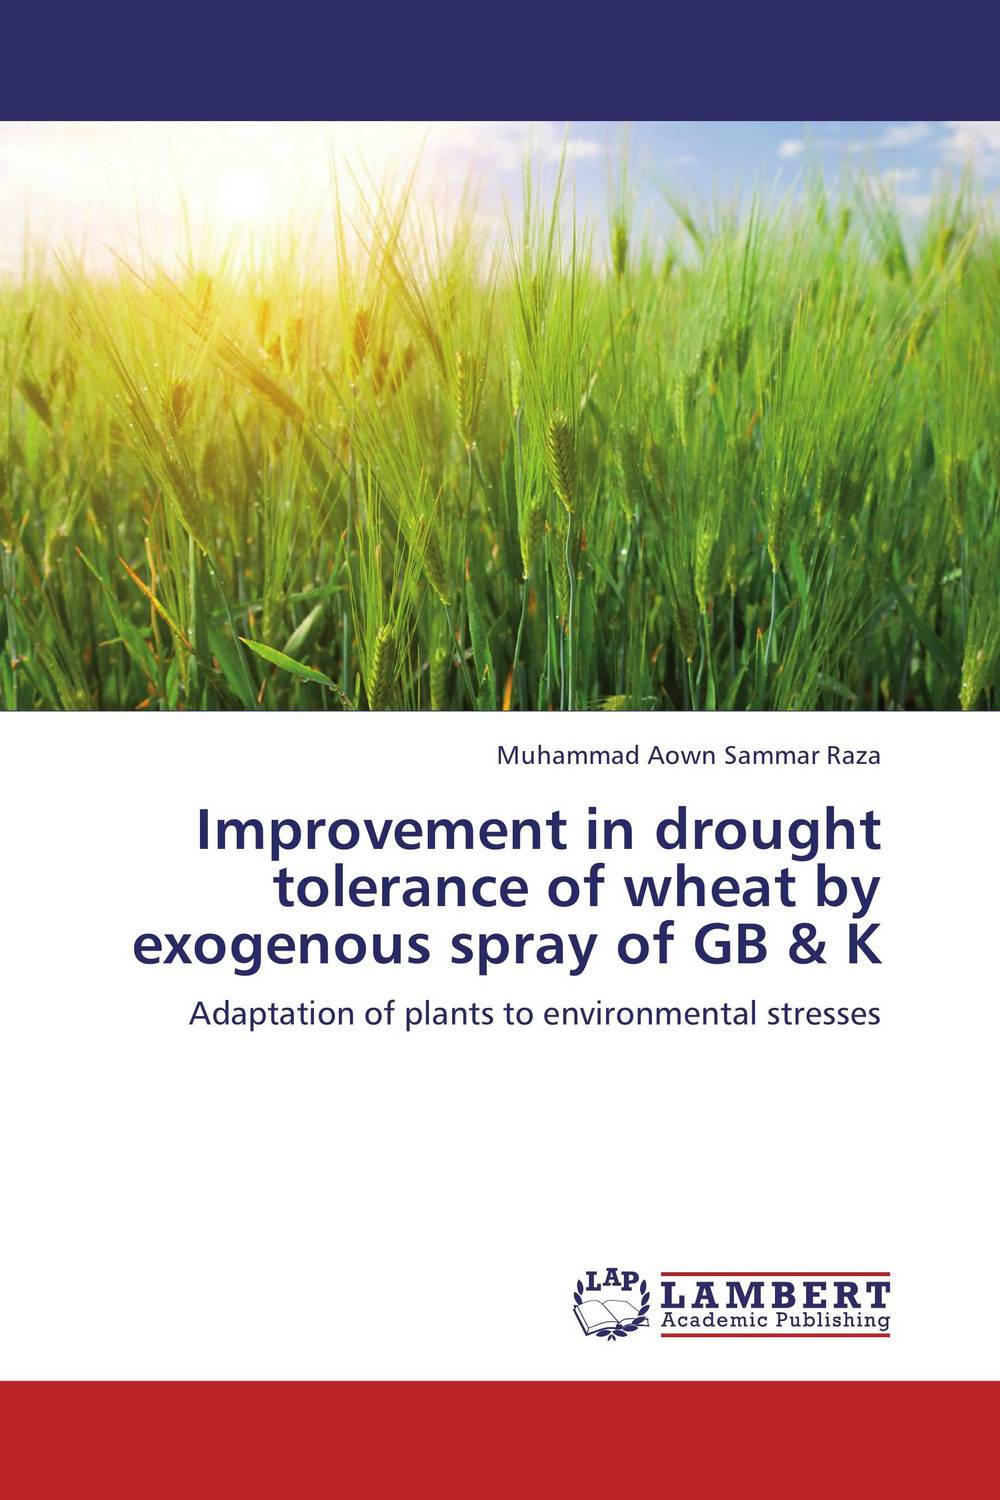 Improvement in drought tolerance of wheat by exogenous spray of GB & K breeding for improvement of water stress tolerance in bread wheat